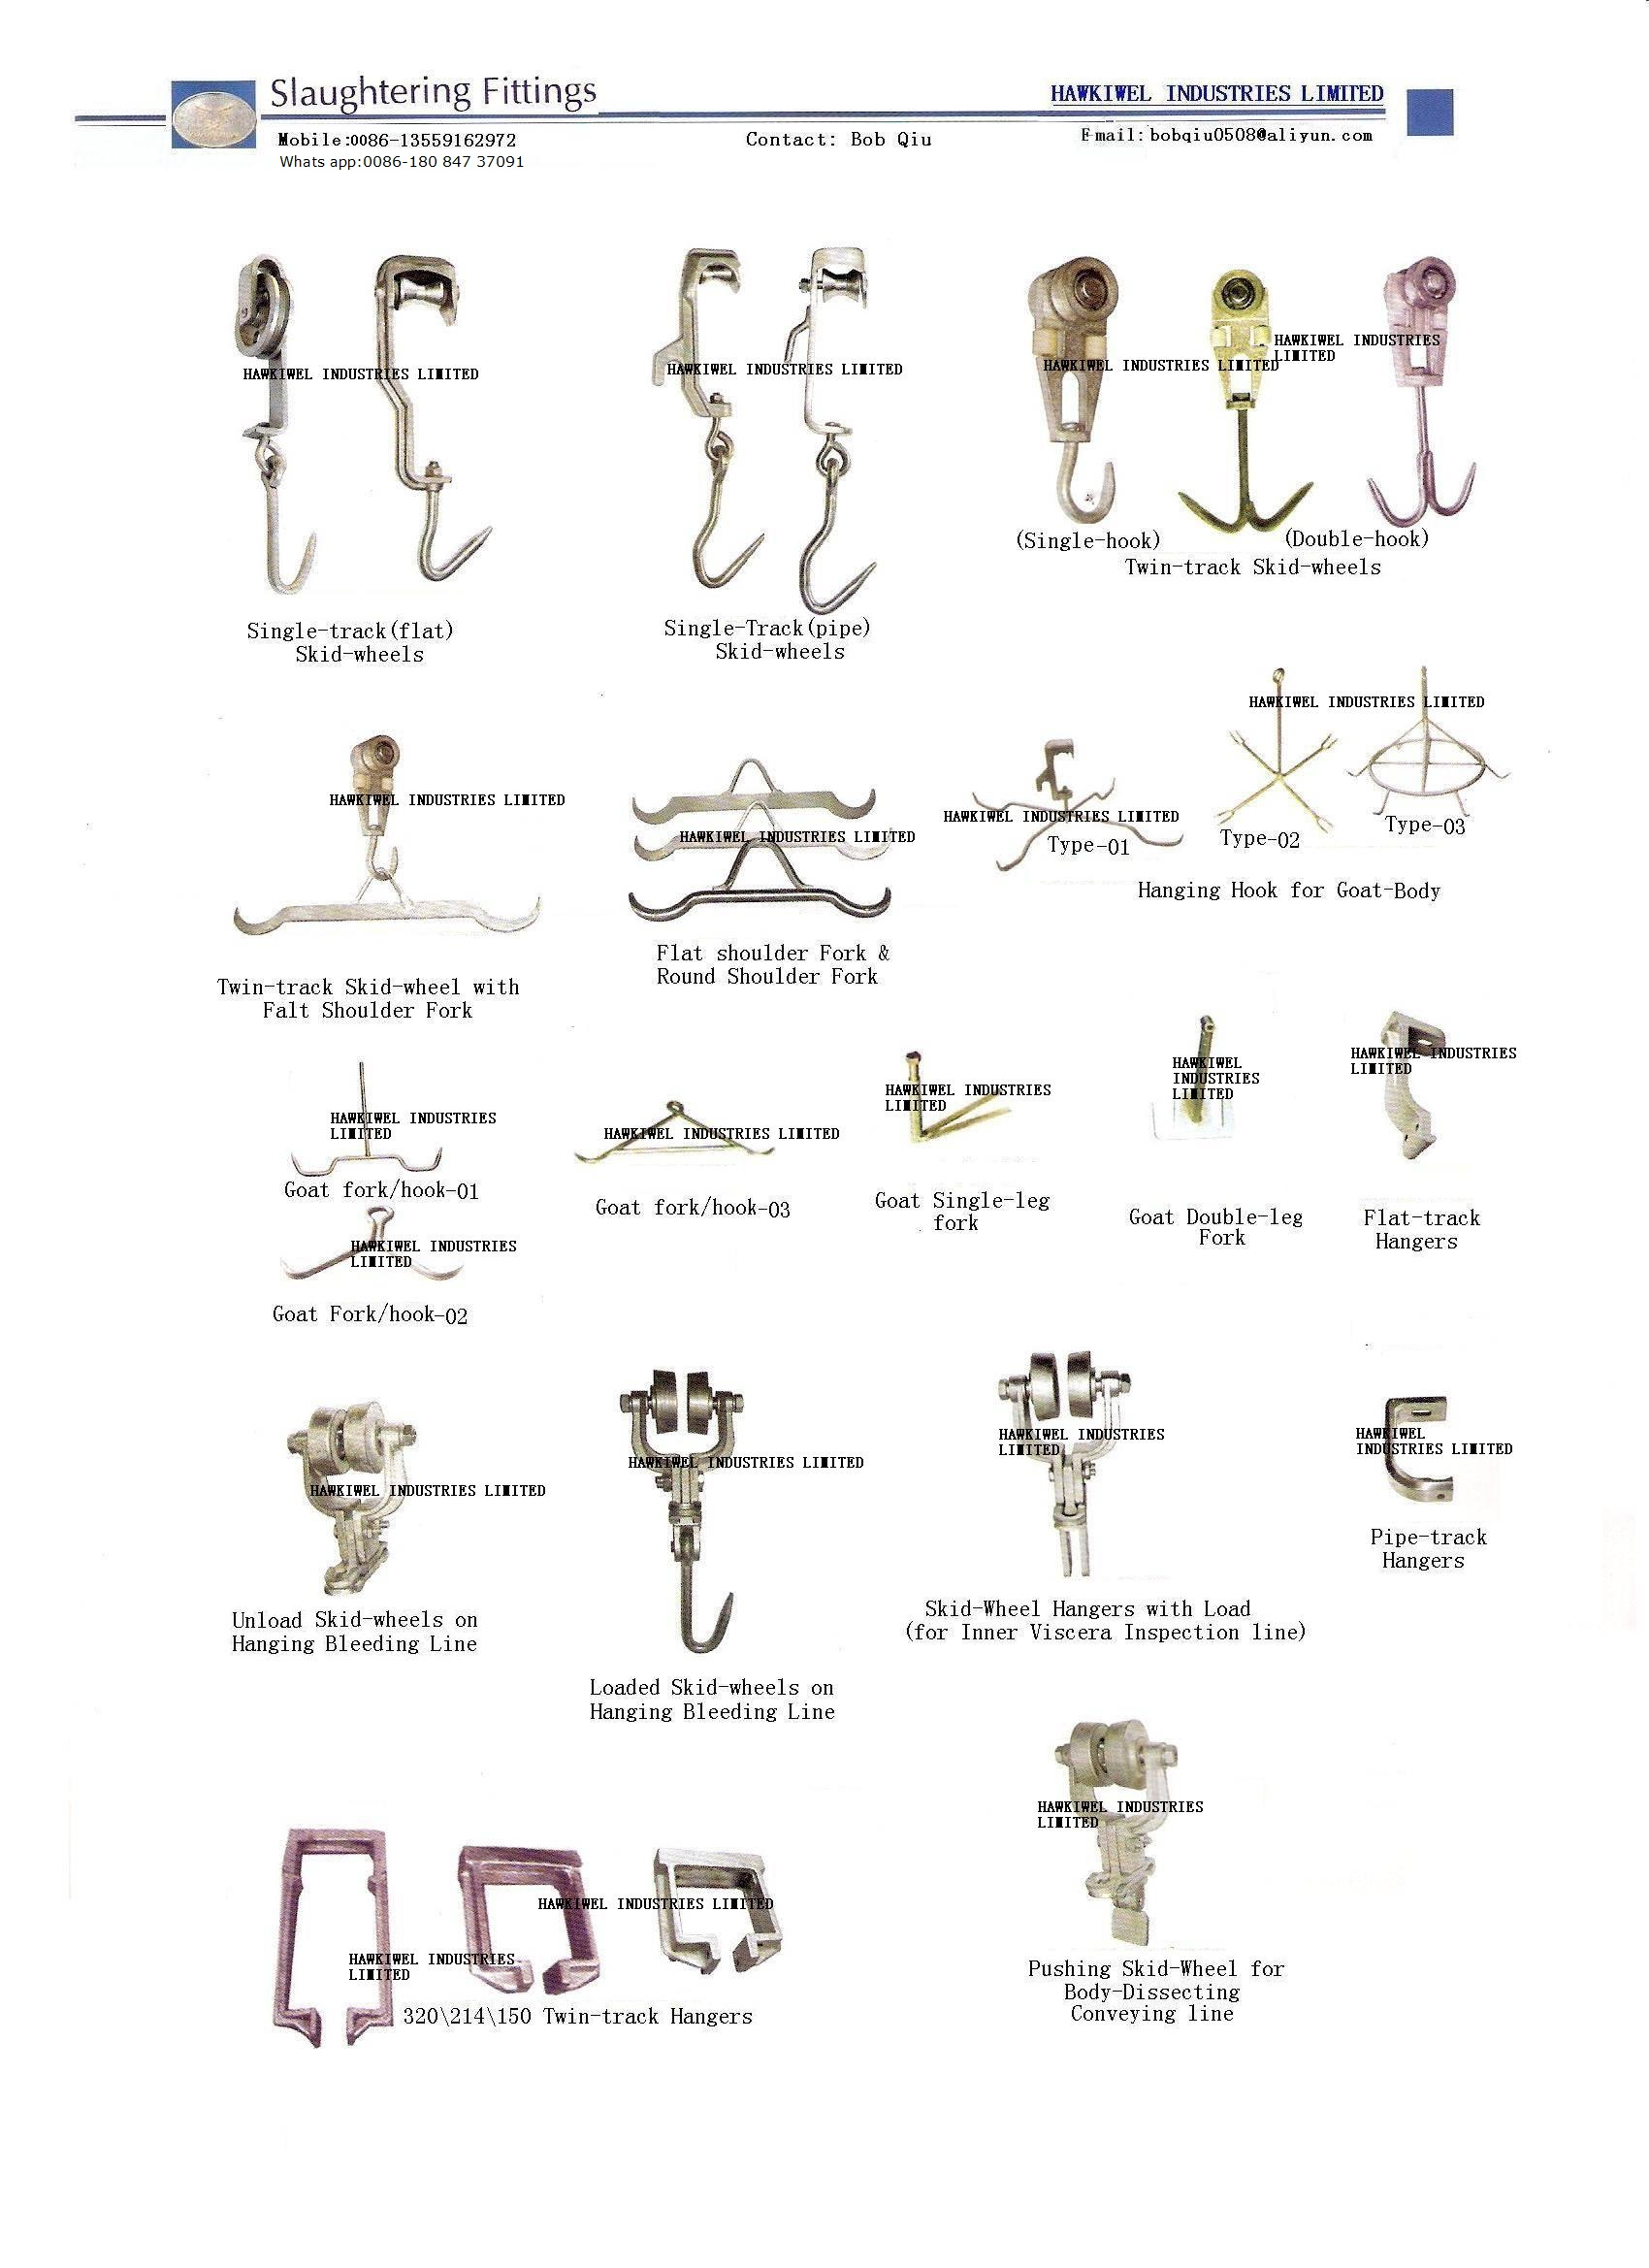 slaughteirng equipment/machinery parts/accessary